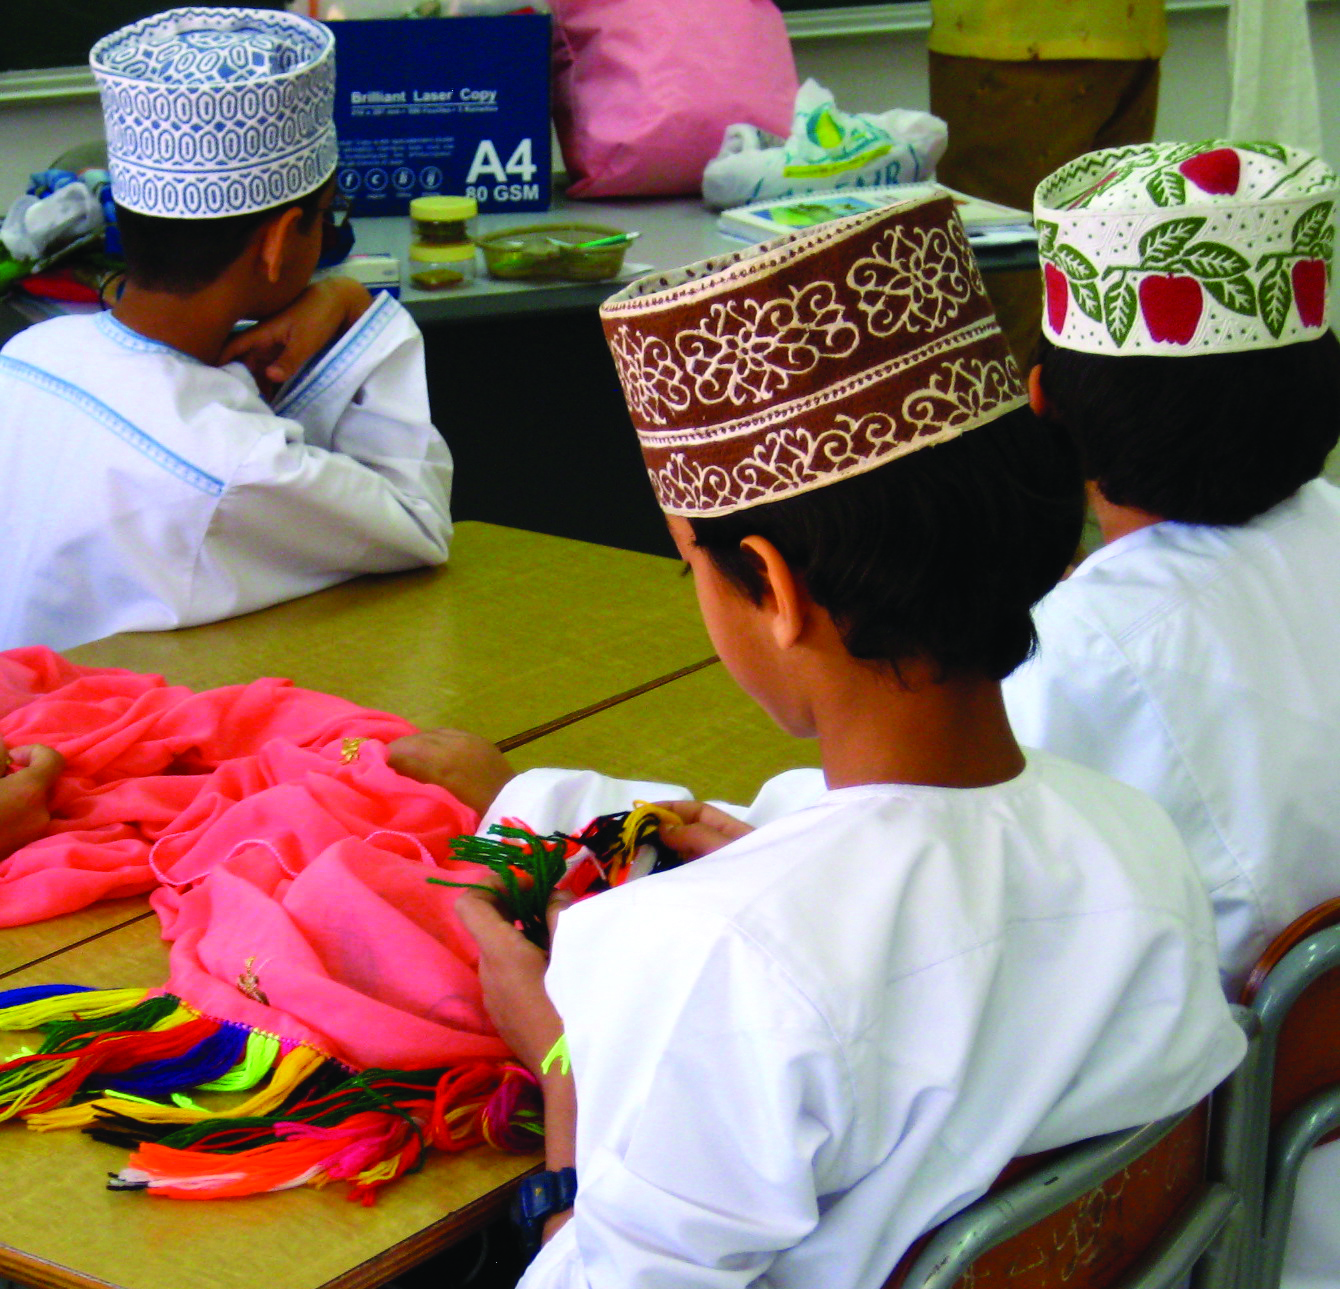 Omani Men's National Dress: Displaying Personal Taste, Asserting